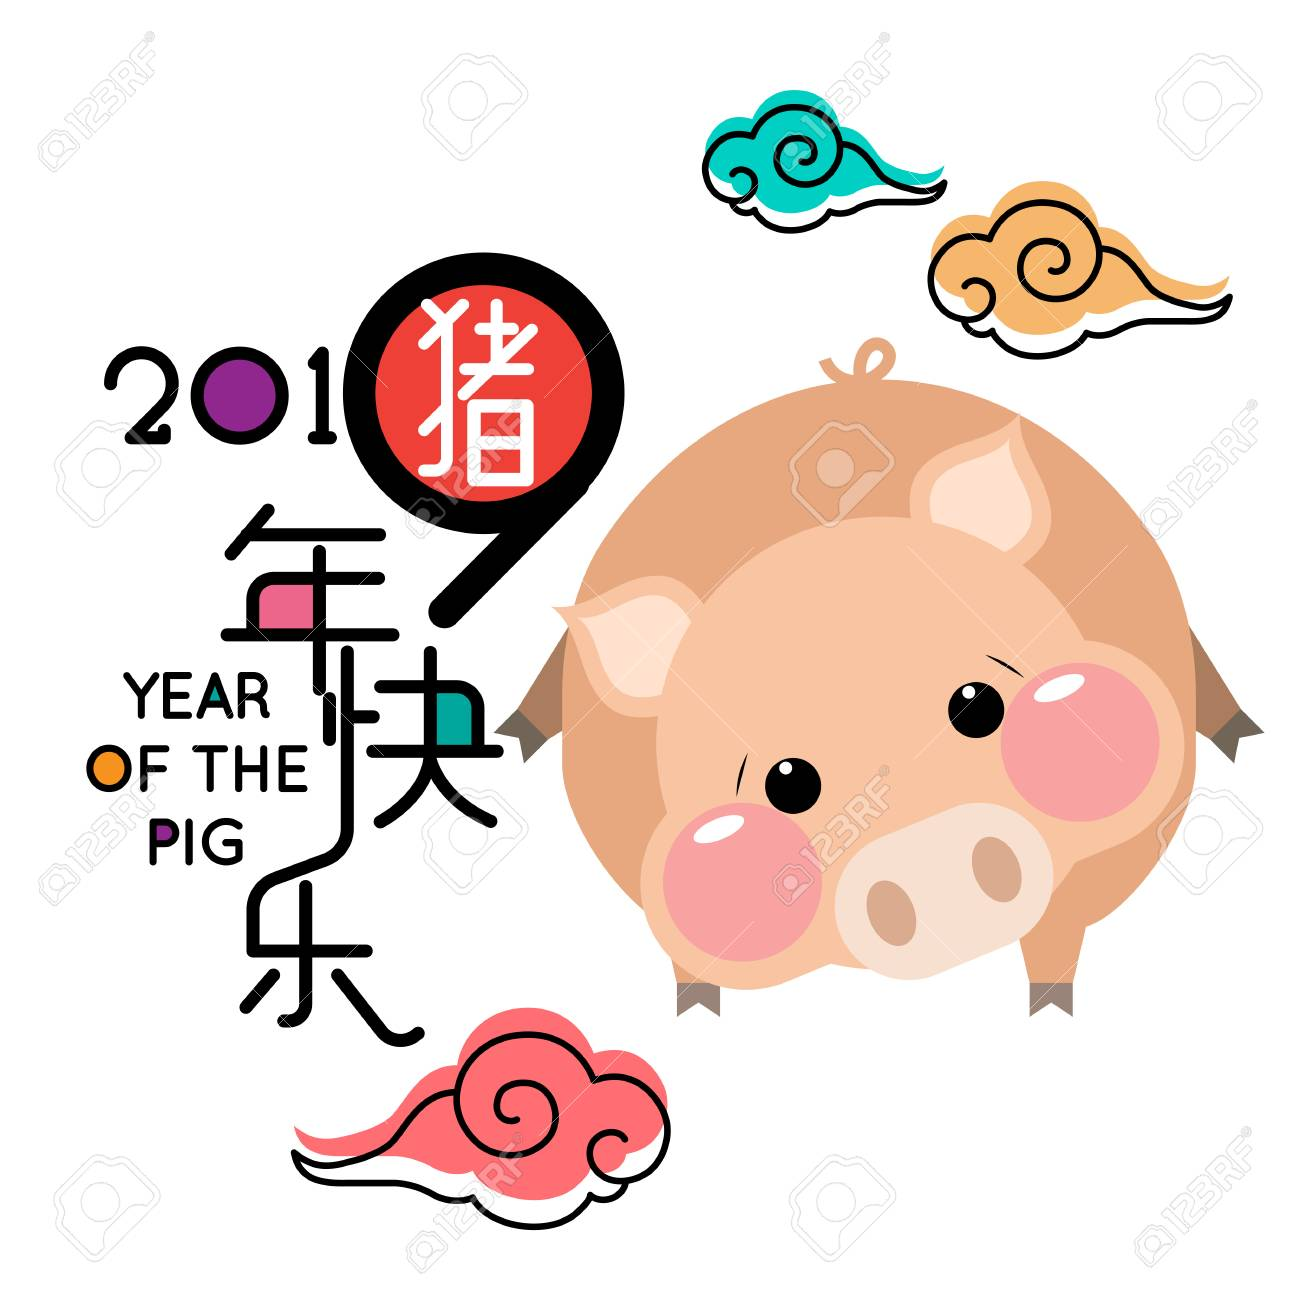 Happy Chinese new year 2019, year of the pig with cute cartoon